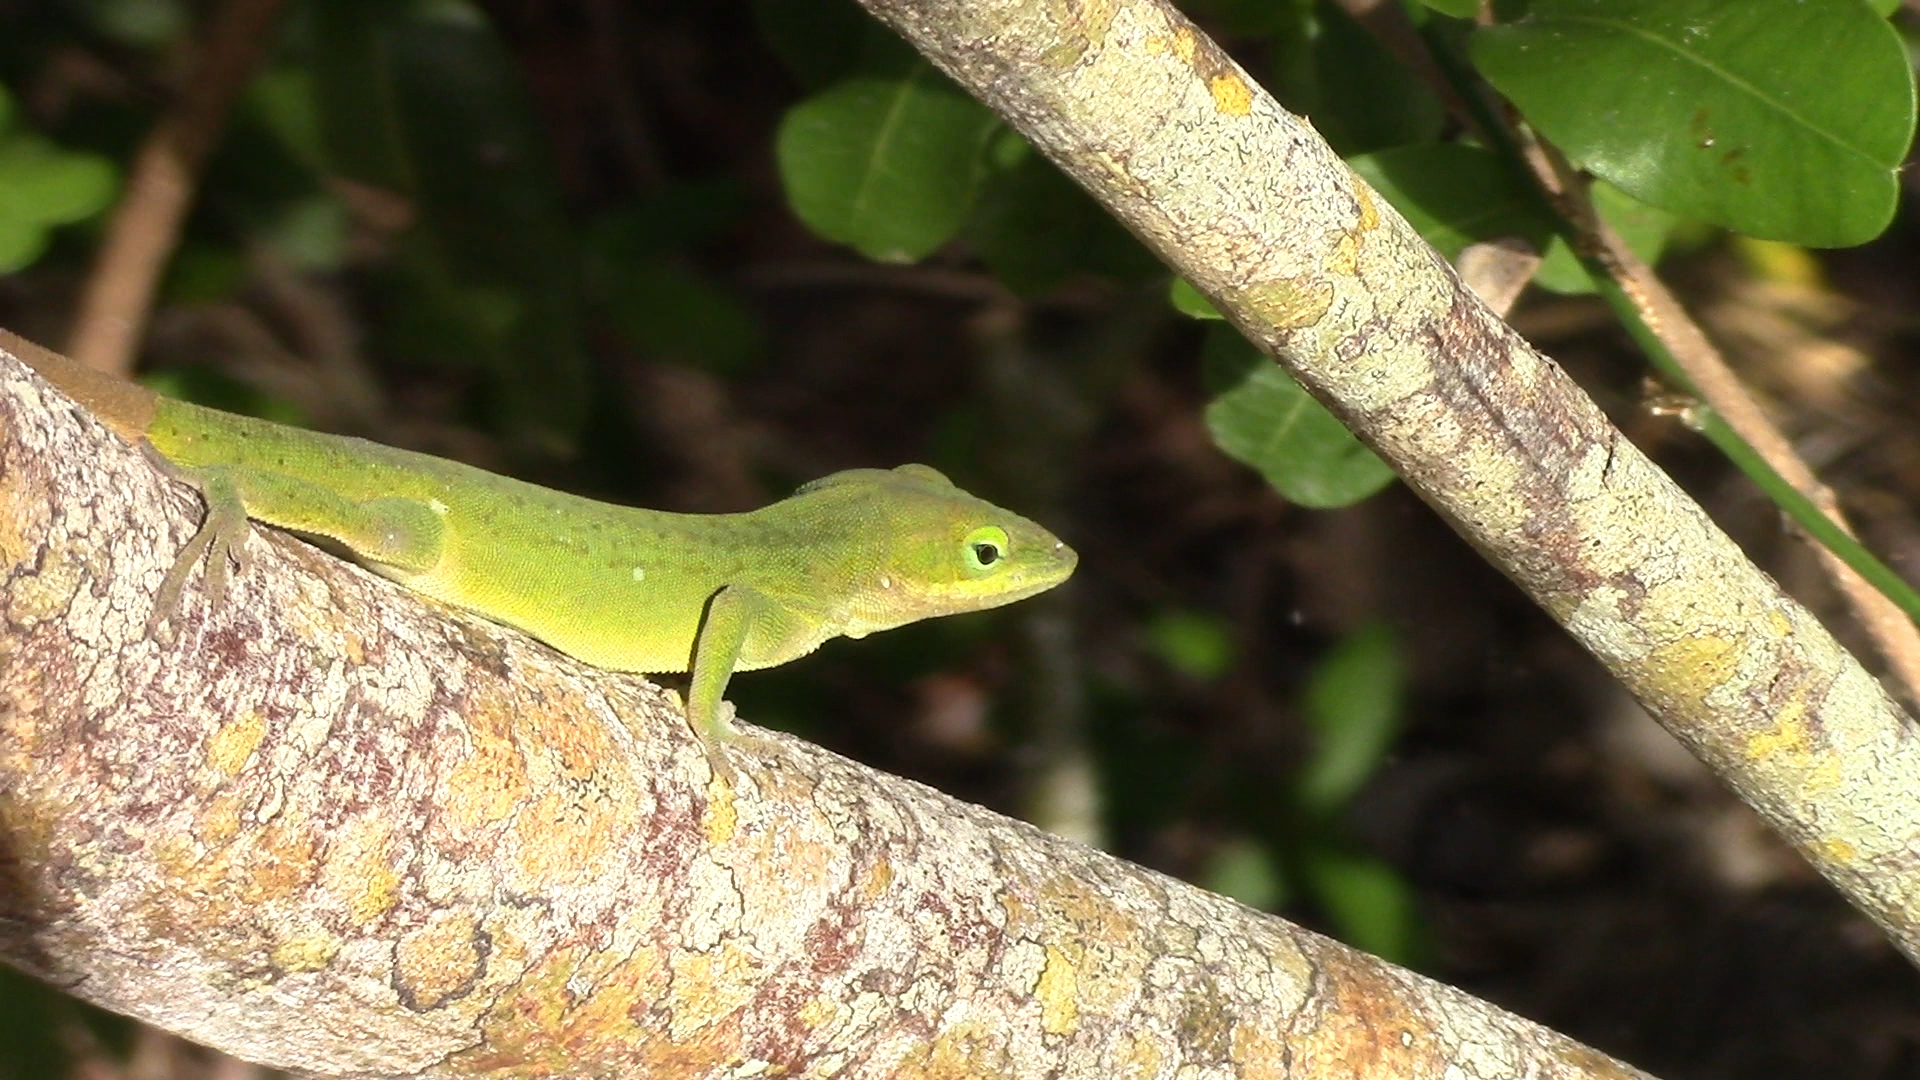 A beautiful Green Anole. They are native to Florida, but have been pushed out mostly by the non-native Cuban Anole that are more commonly seen.